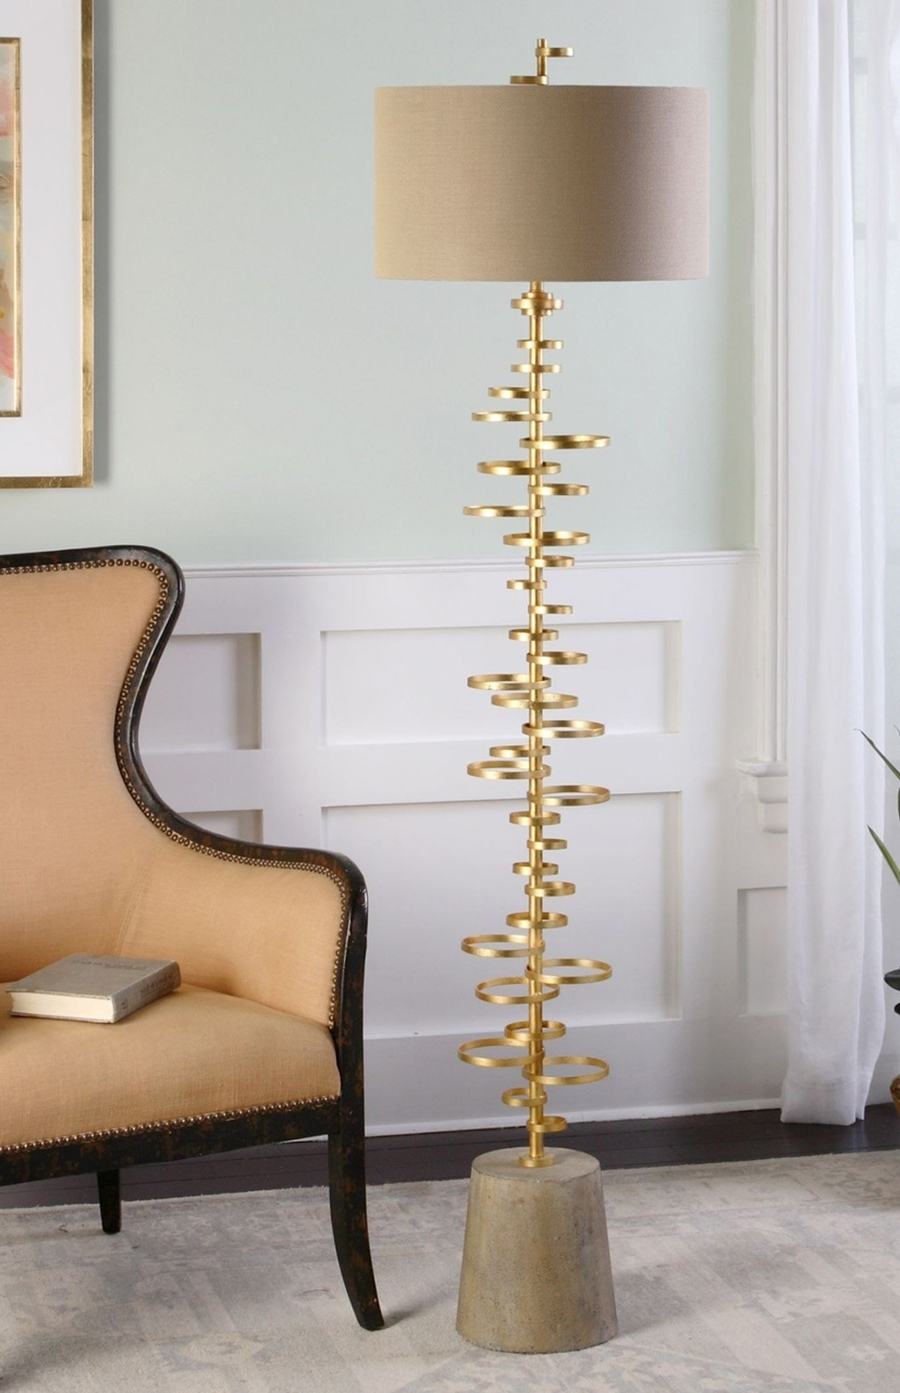 Lamp : Modernloor Lampsor Living Room Wayfair With Table Tray Gold Pertaining To Latest Wayfair Living Room Table Lamps (View 4 of 20)